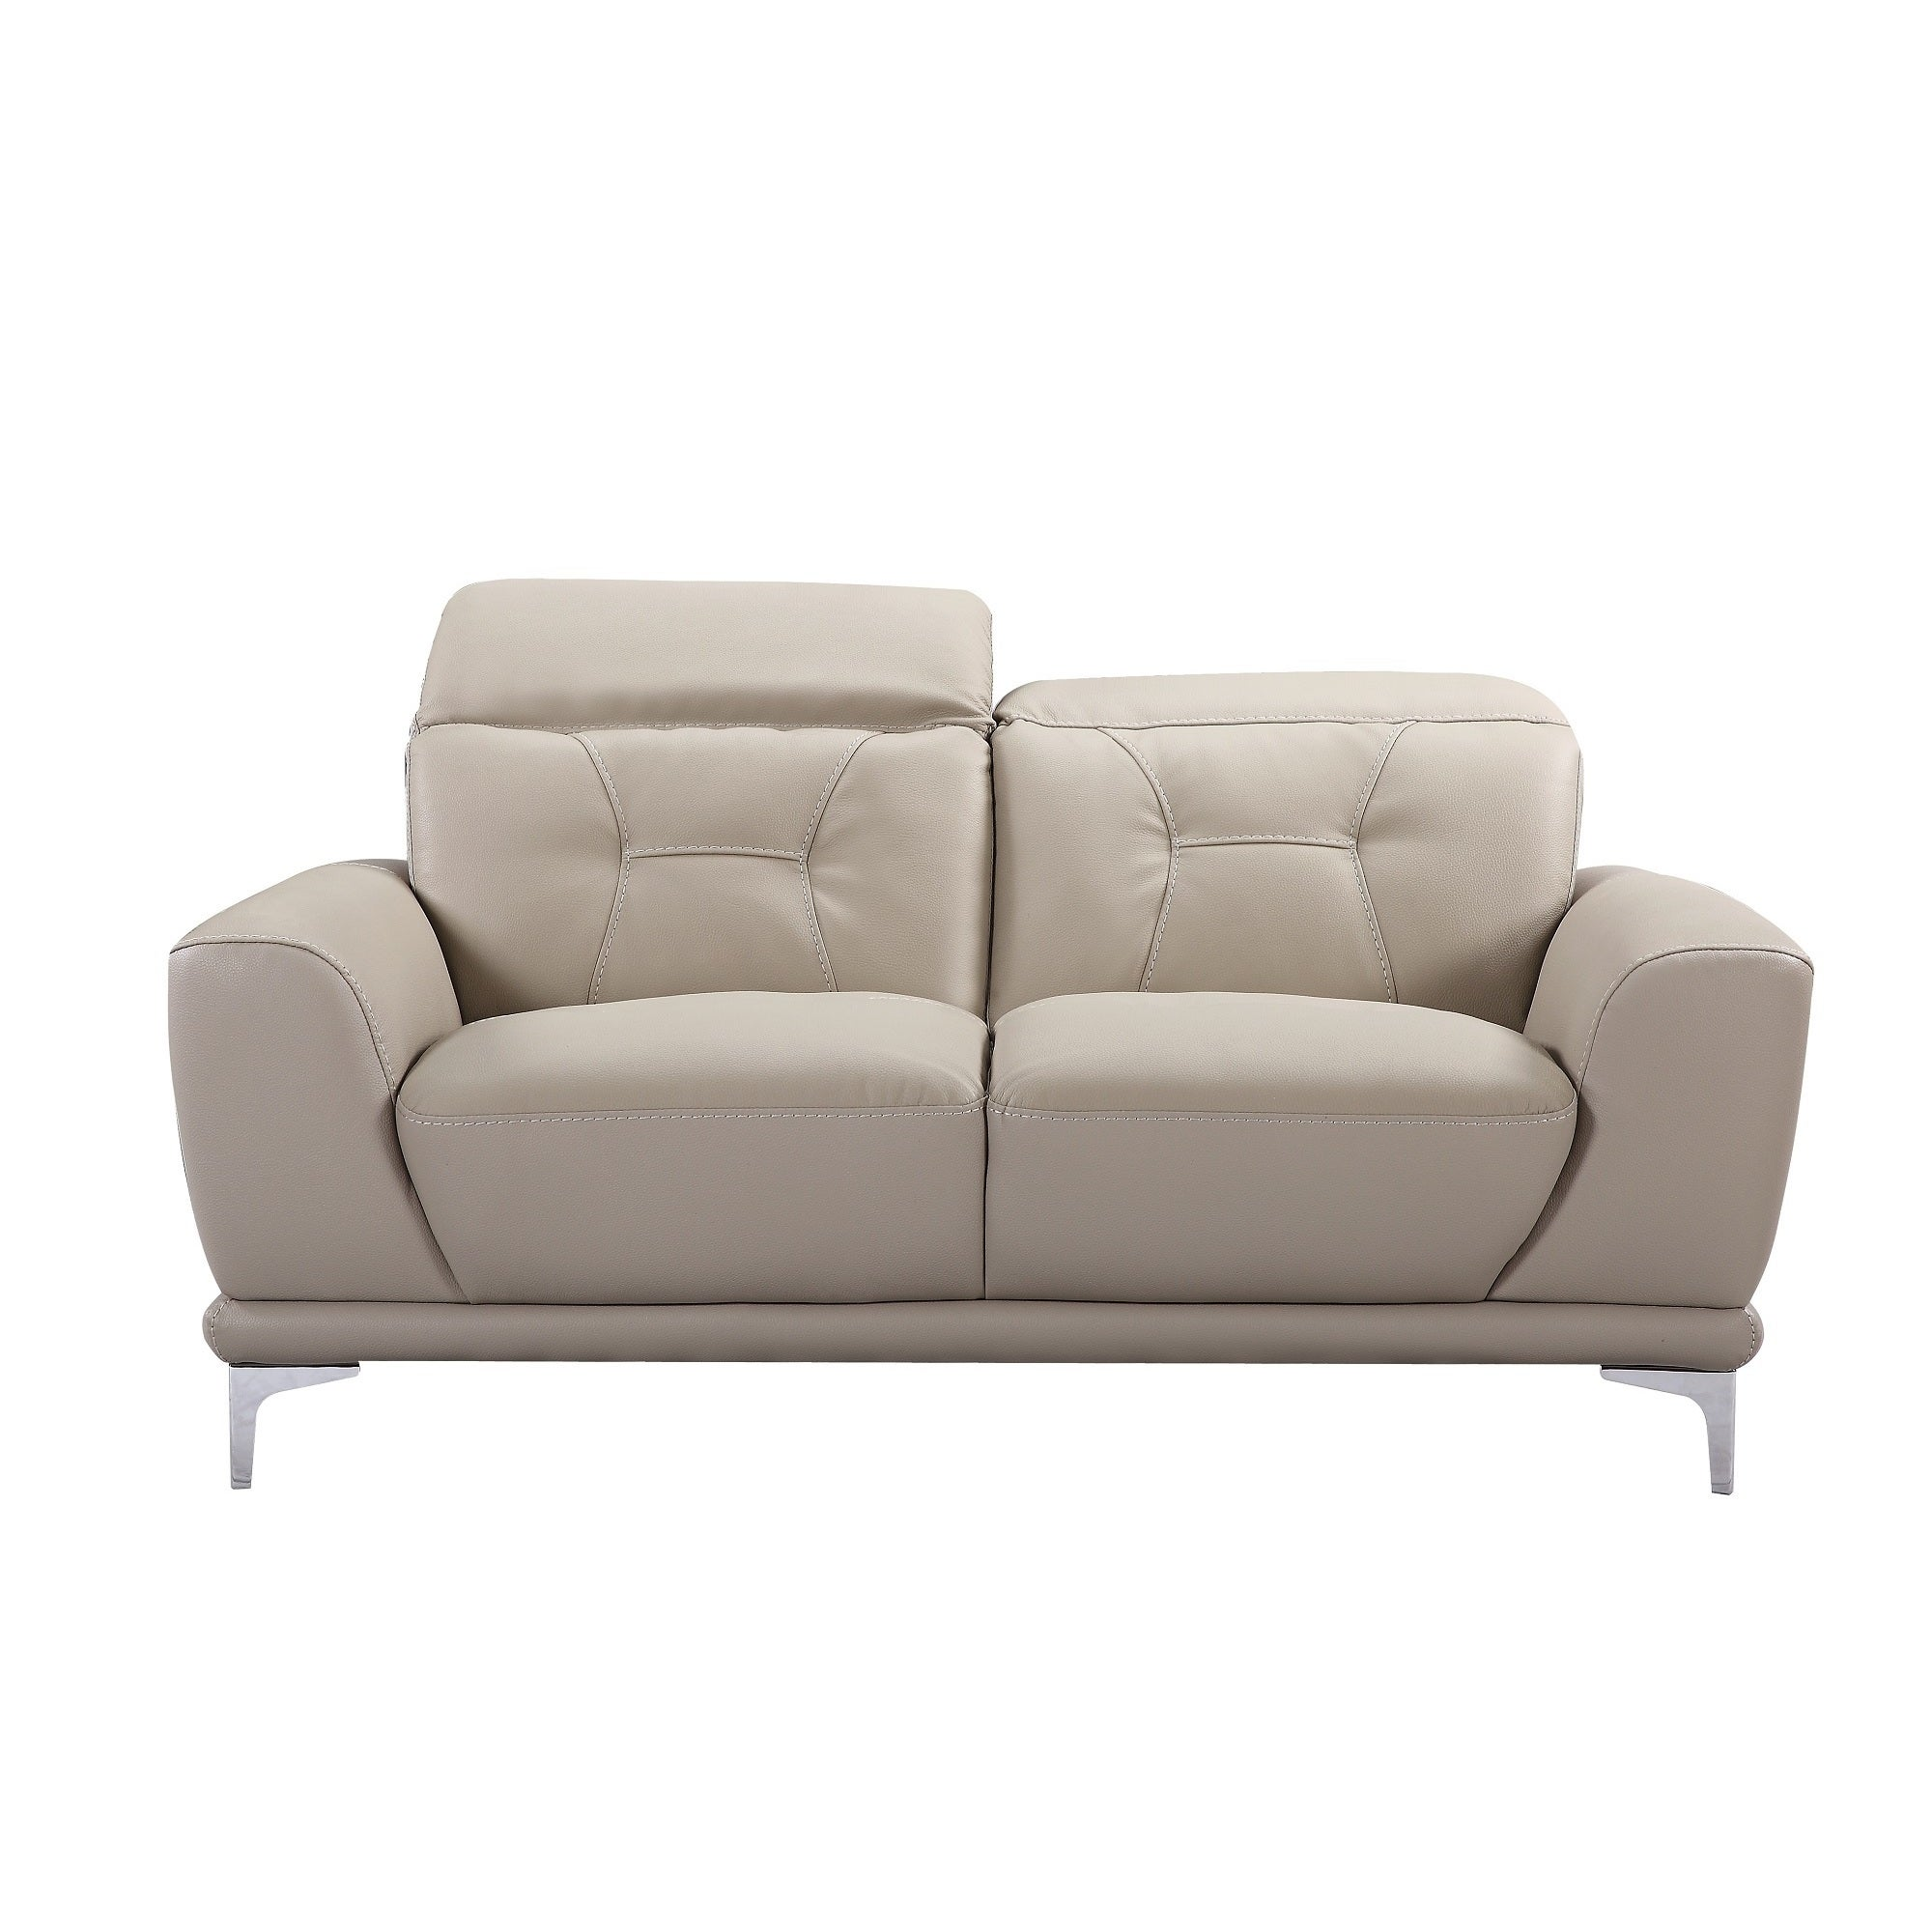 dimensions full standard bed depth loveseat inch measurements sofas deep length beds out fold recliner sofa foot couch size of seater